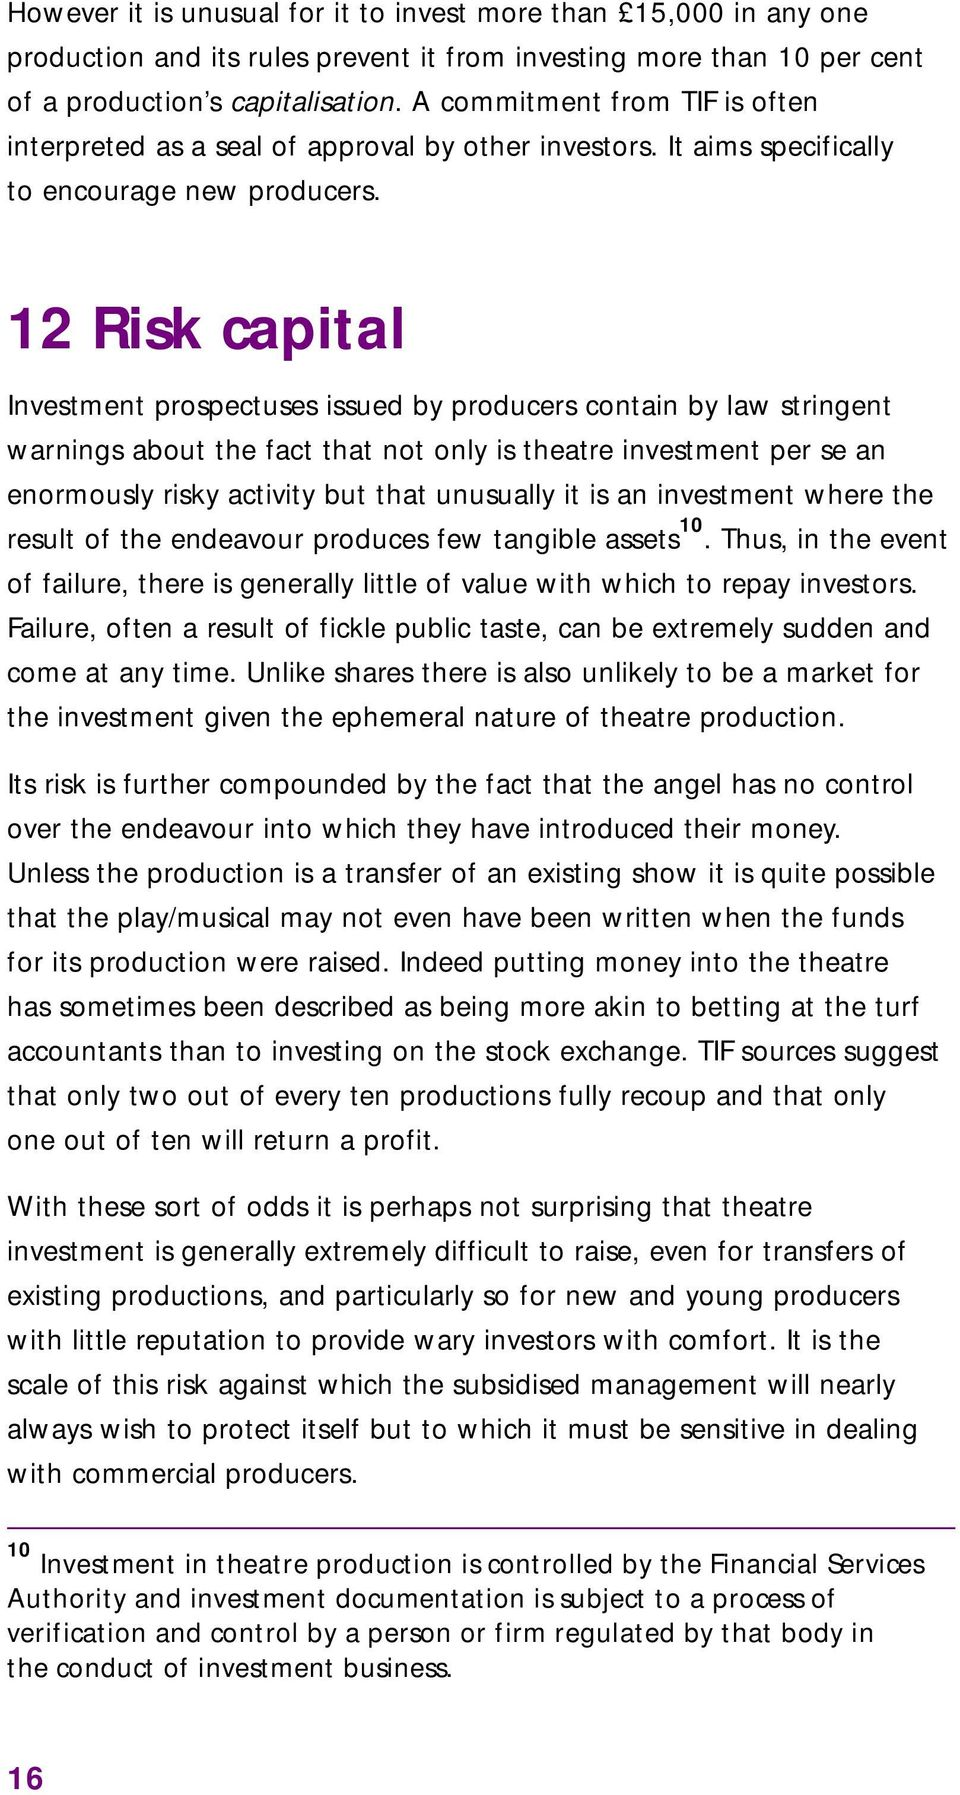 12 Risk capital Investment prospectuses issued by producers contain by law stringent warnings about the fact that not only is theatre investment per se an enormously risky activity but that unusually